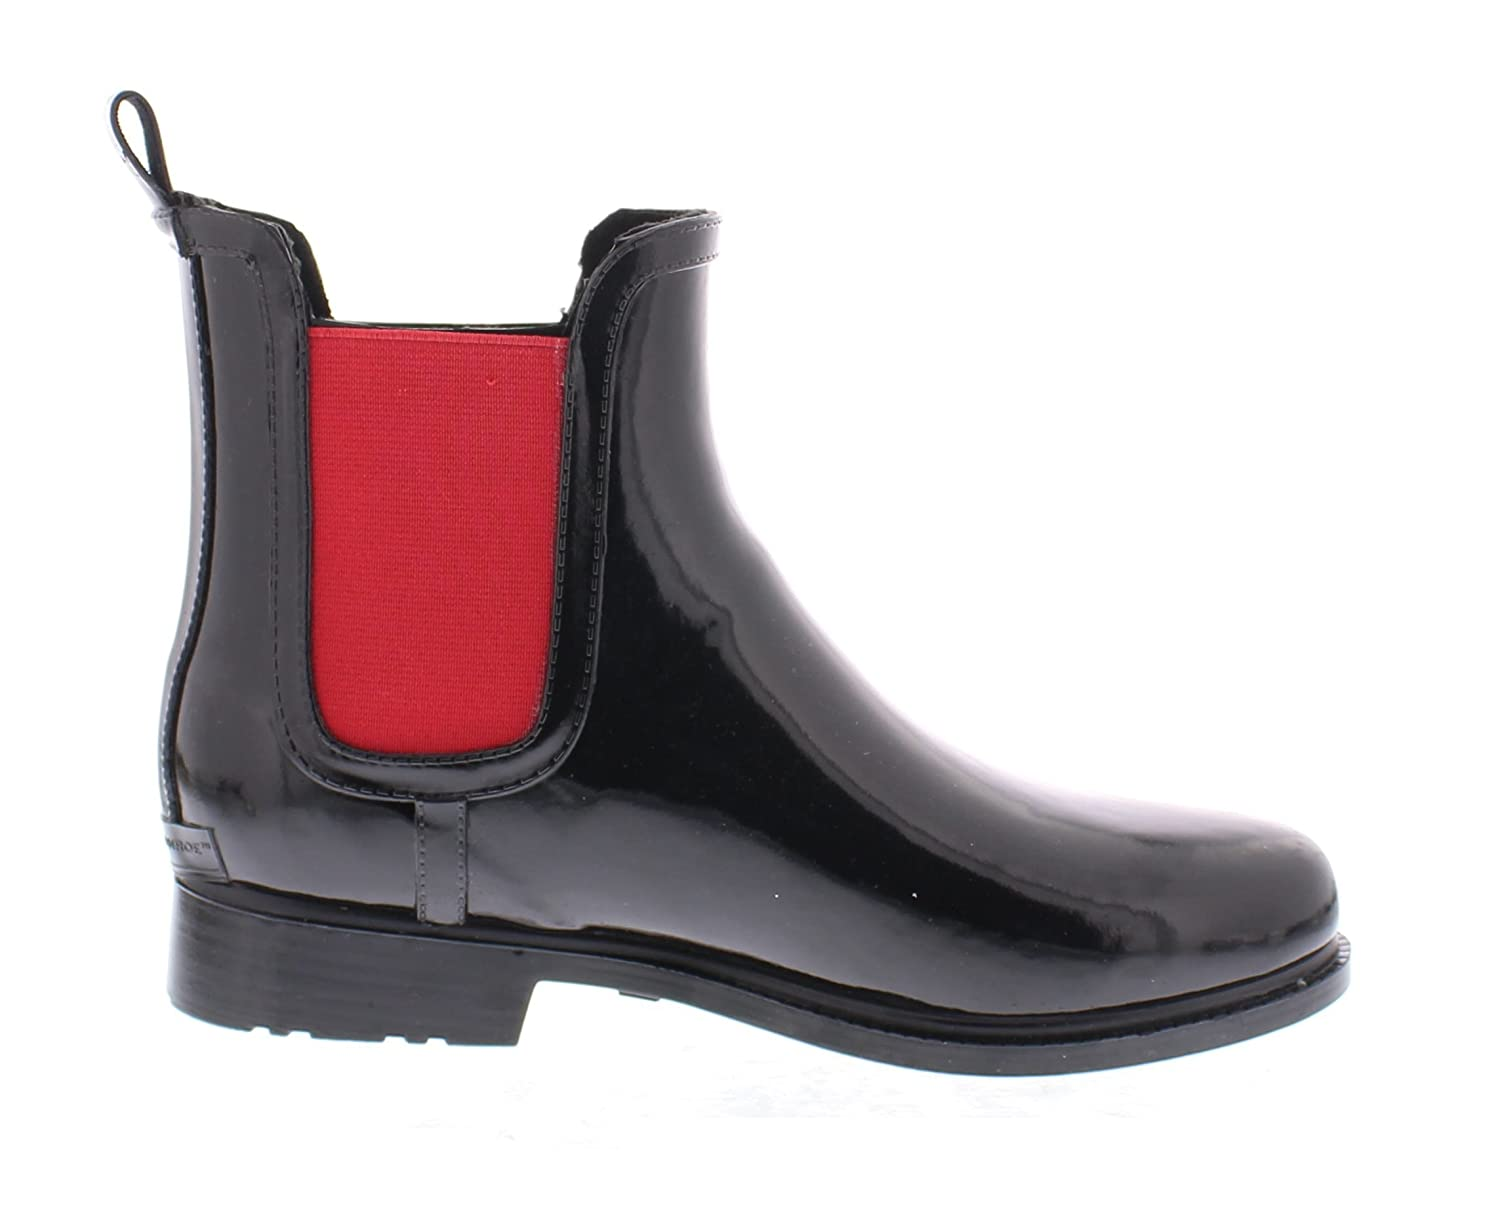 Marilyn Monroe Women's Ankle Length Short Chelsea Rainboot Shoes, Waterproof Jelly Pull On Welly Boots B078SP3KQ9 10 B(M) US Black/Red